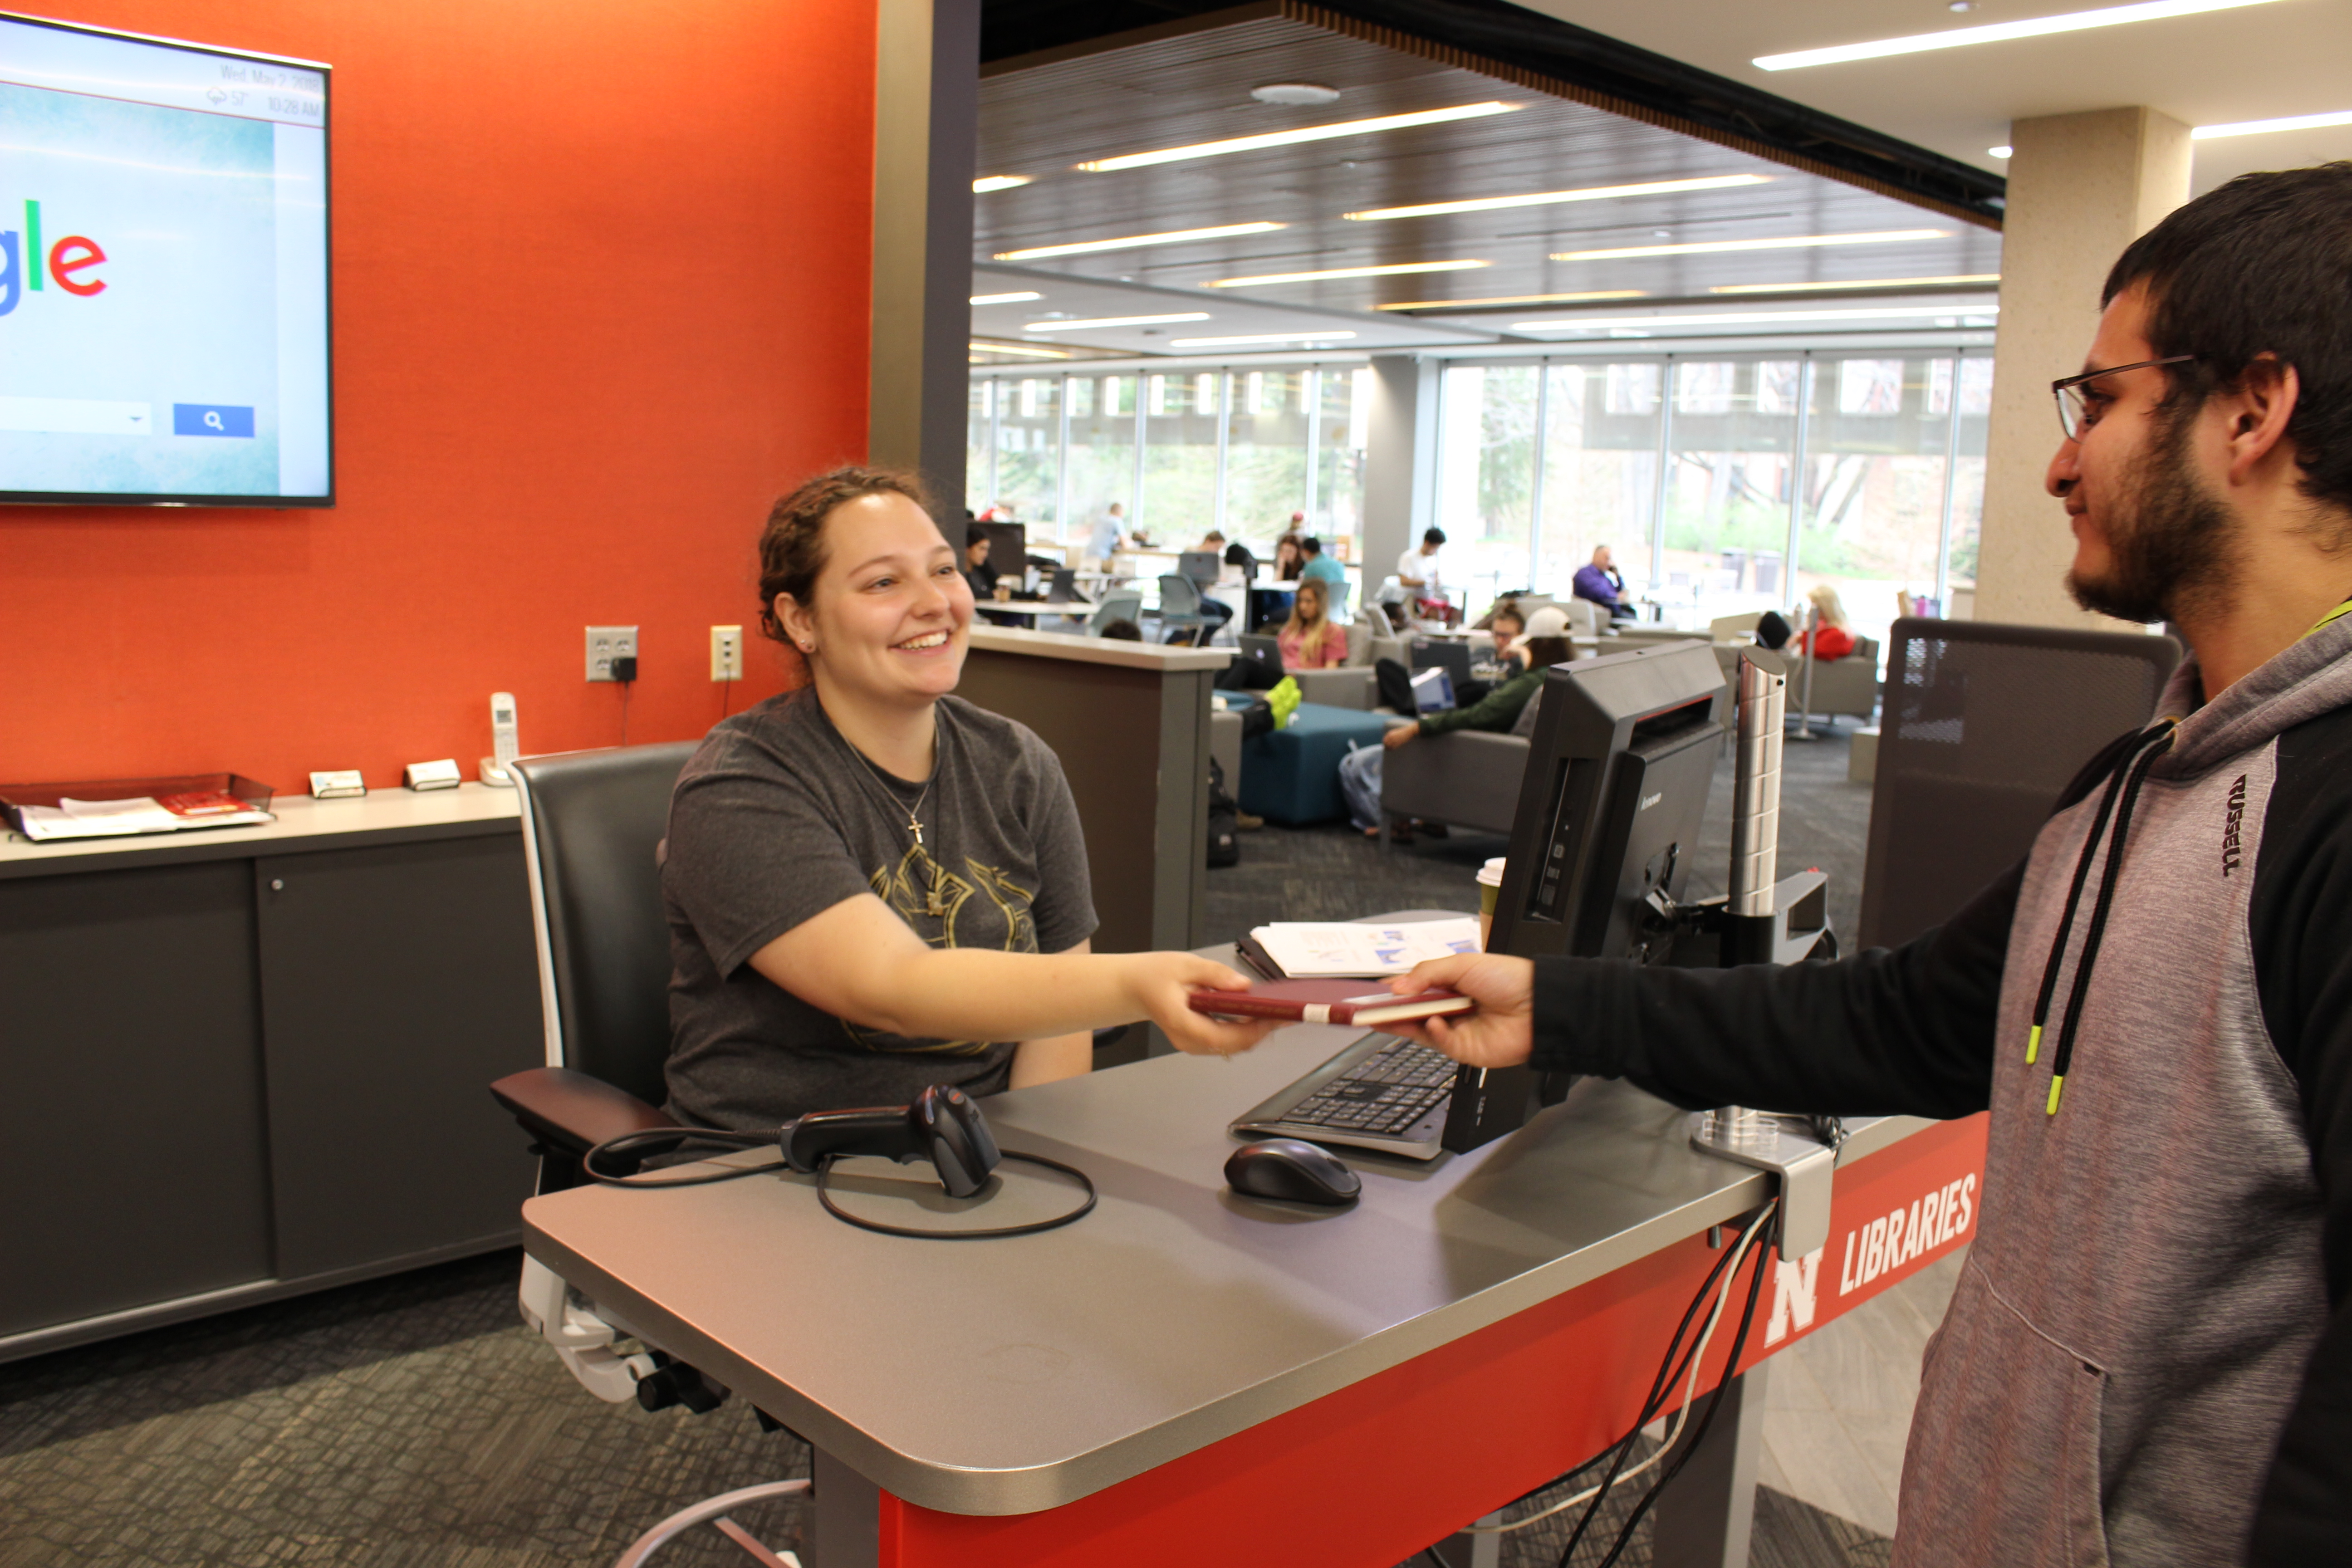 Overdue fines on books have been eliminated, easing a financial burden for Nebraska students.